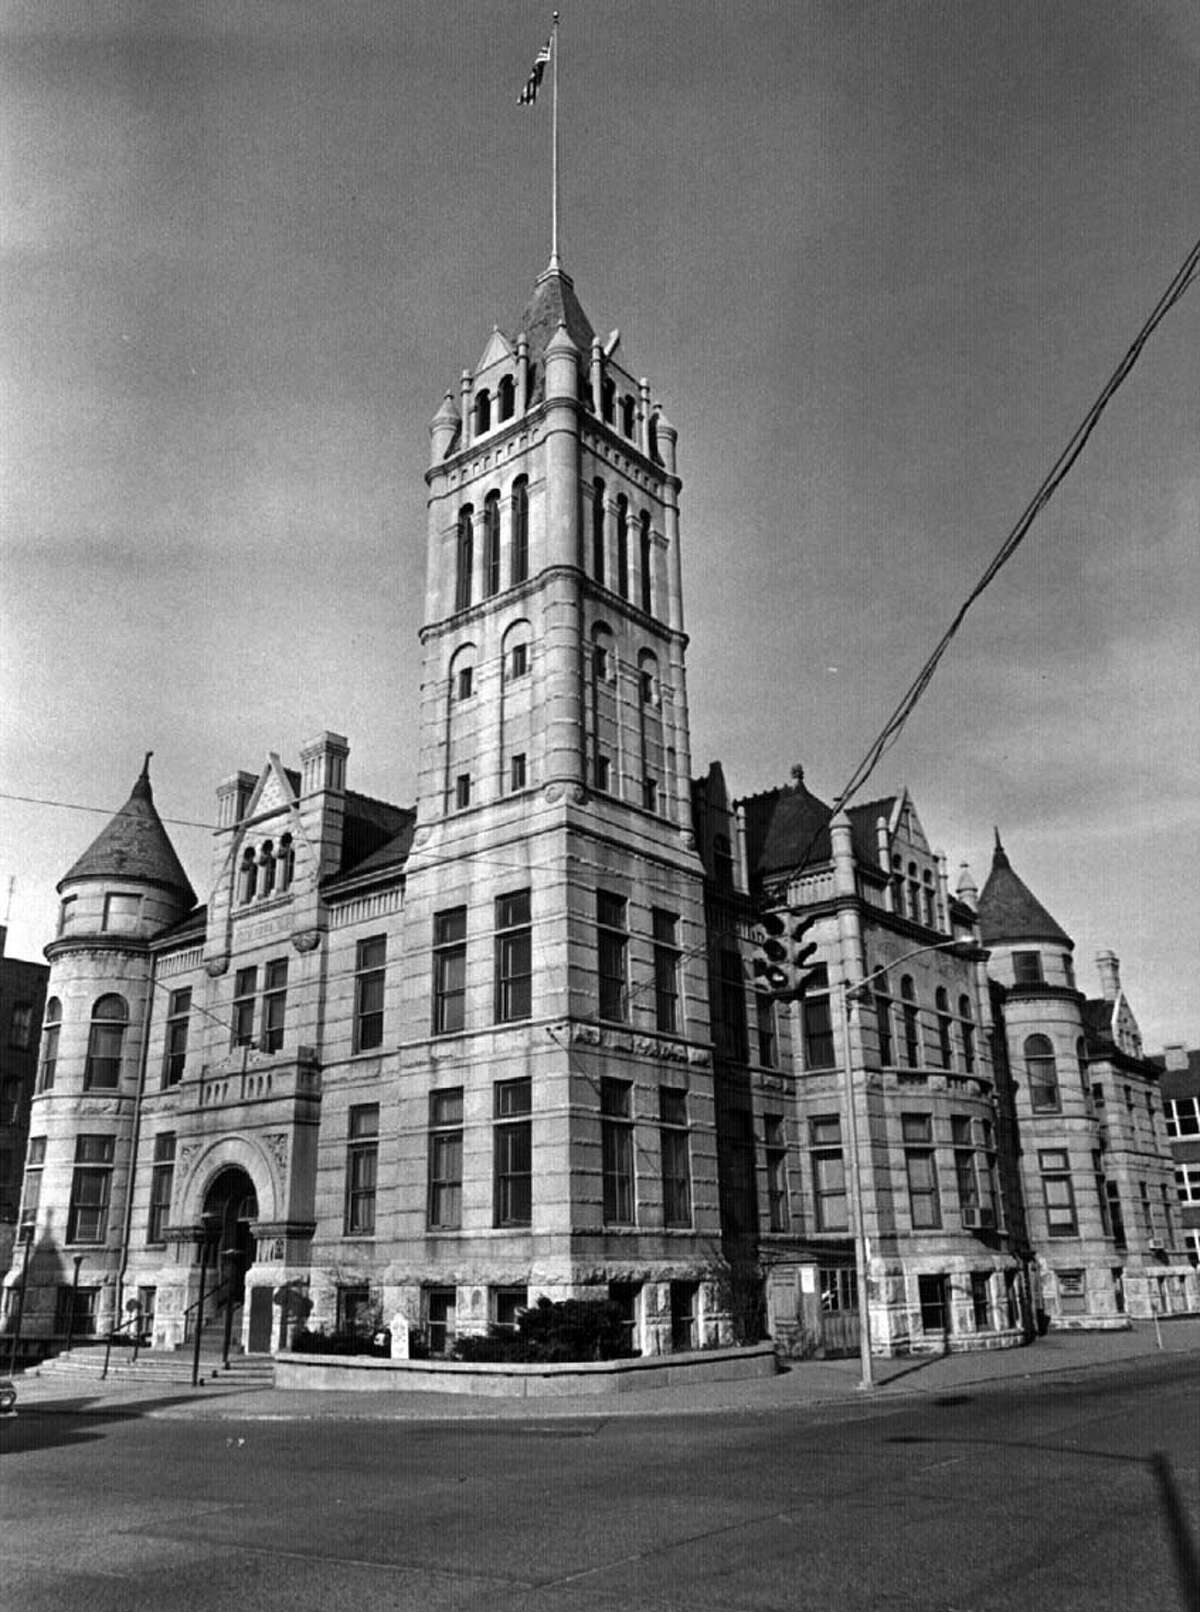 City Hall in Cohoes in years gone by.